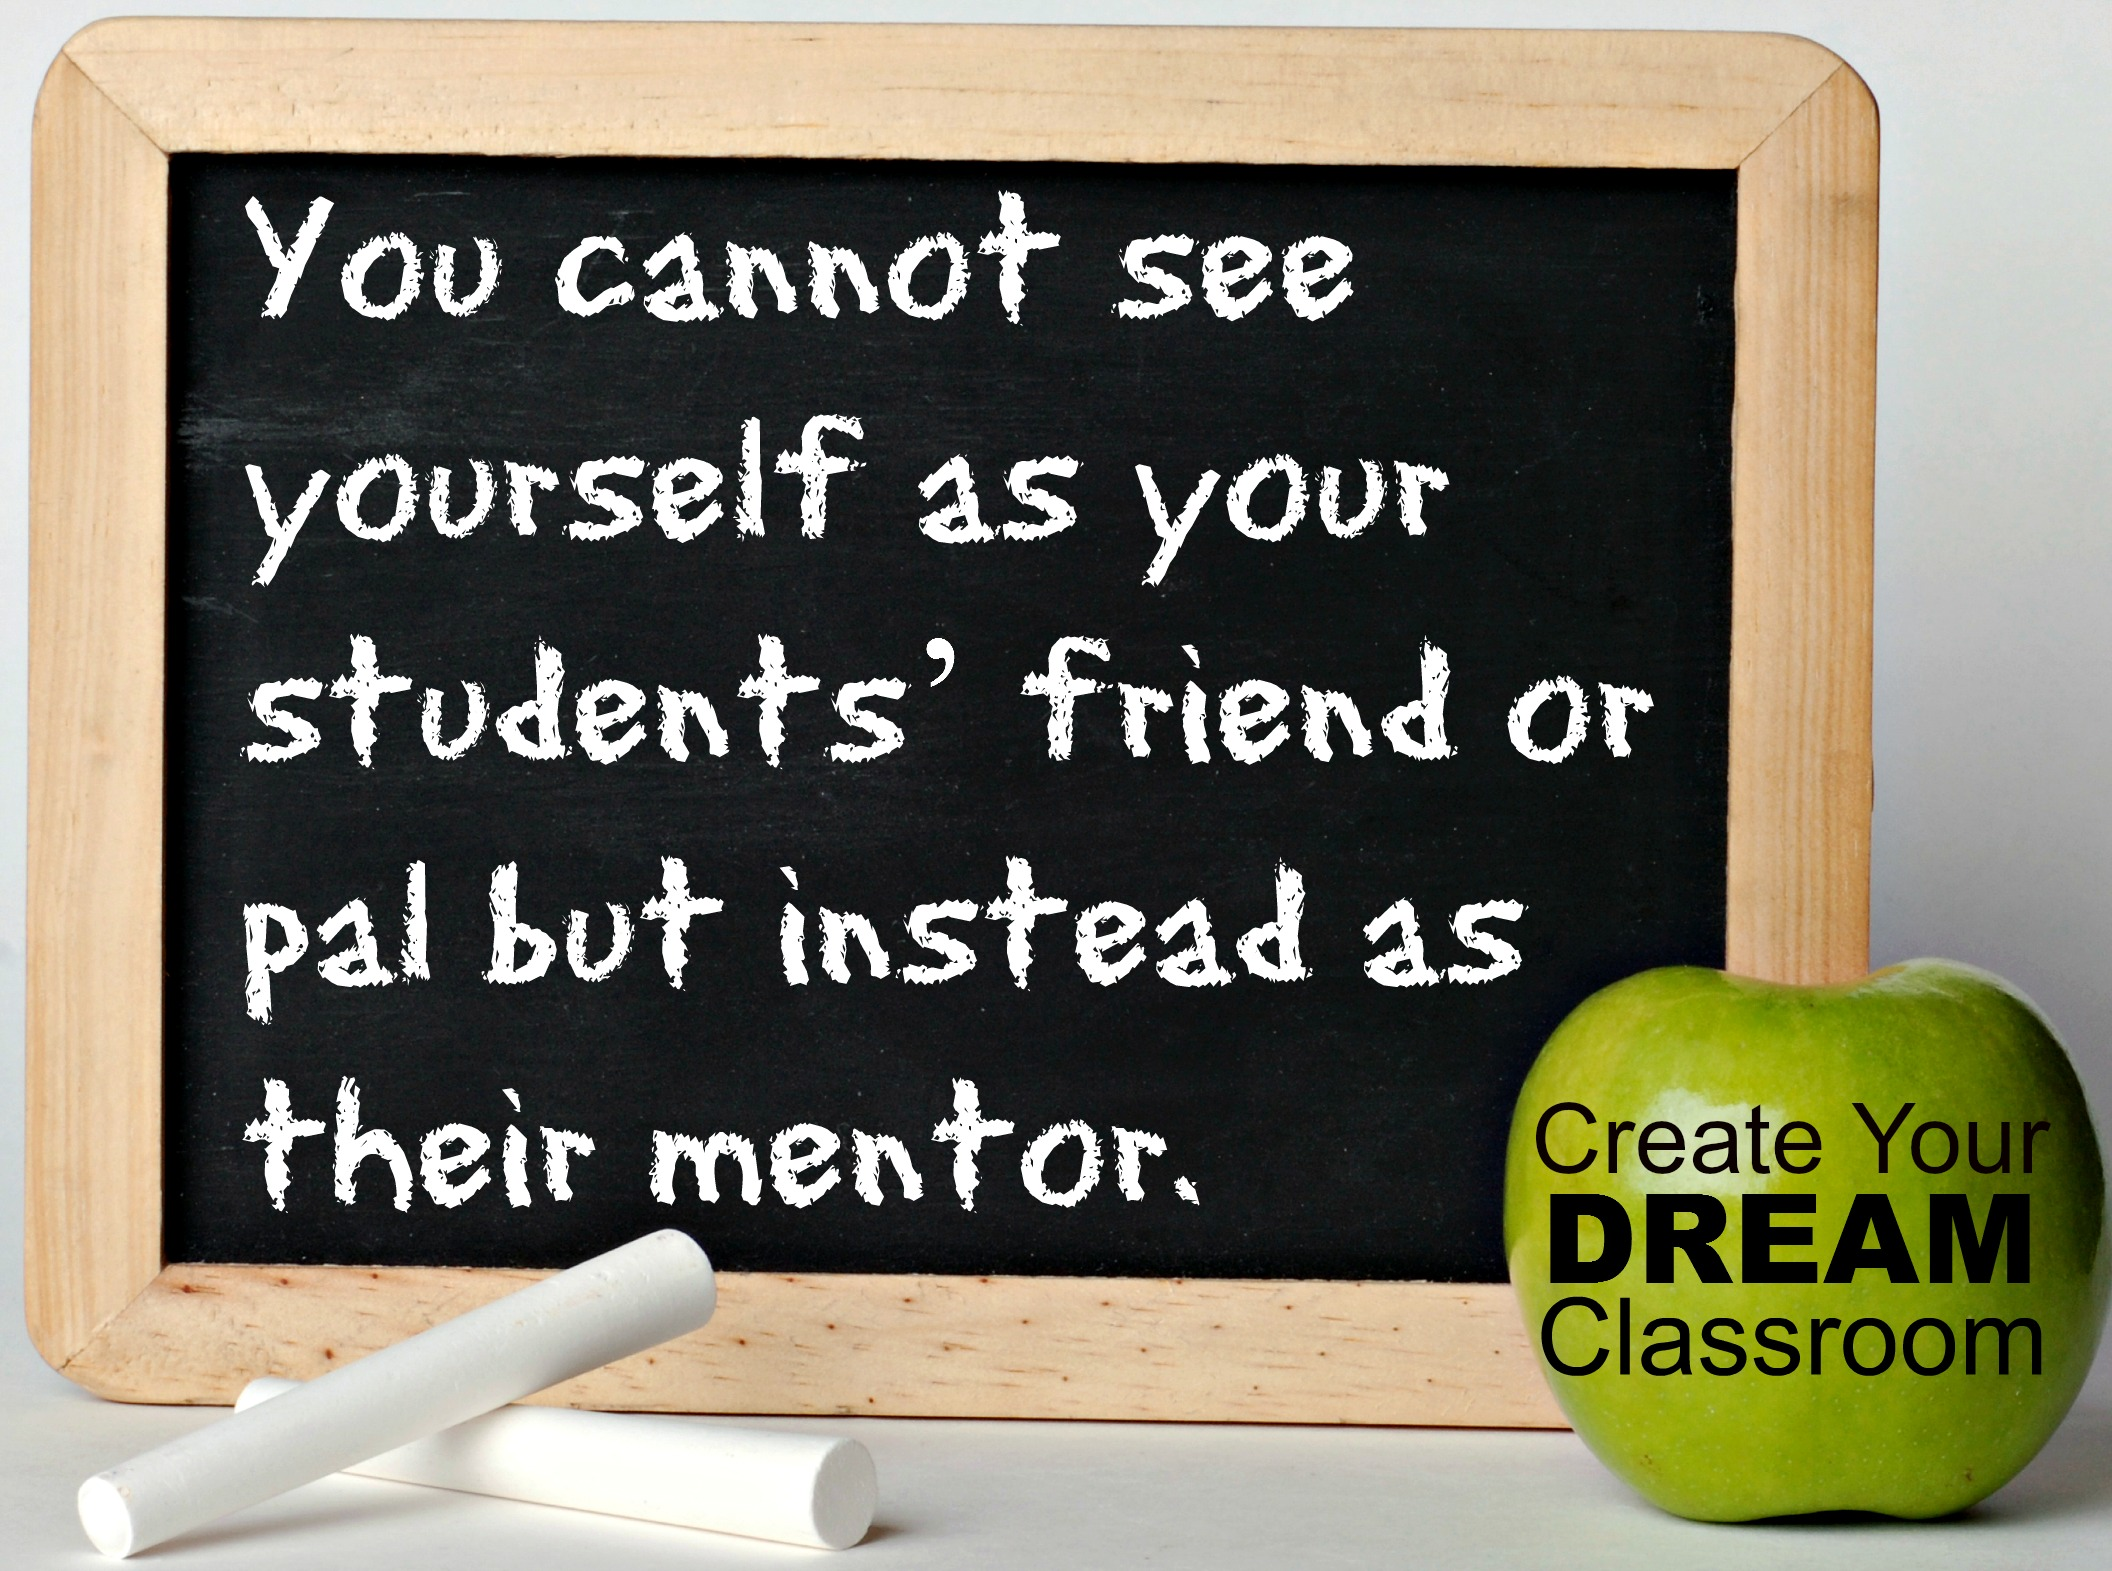 Find out more aout Create Your Dream Classroom